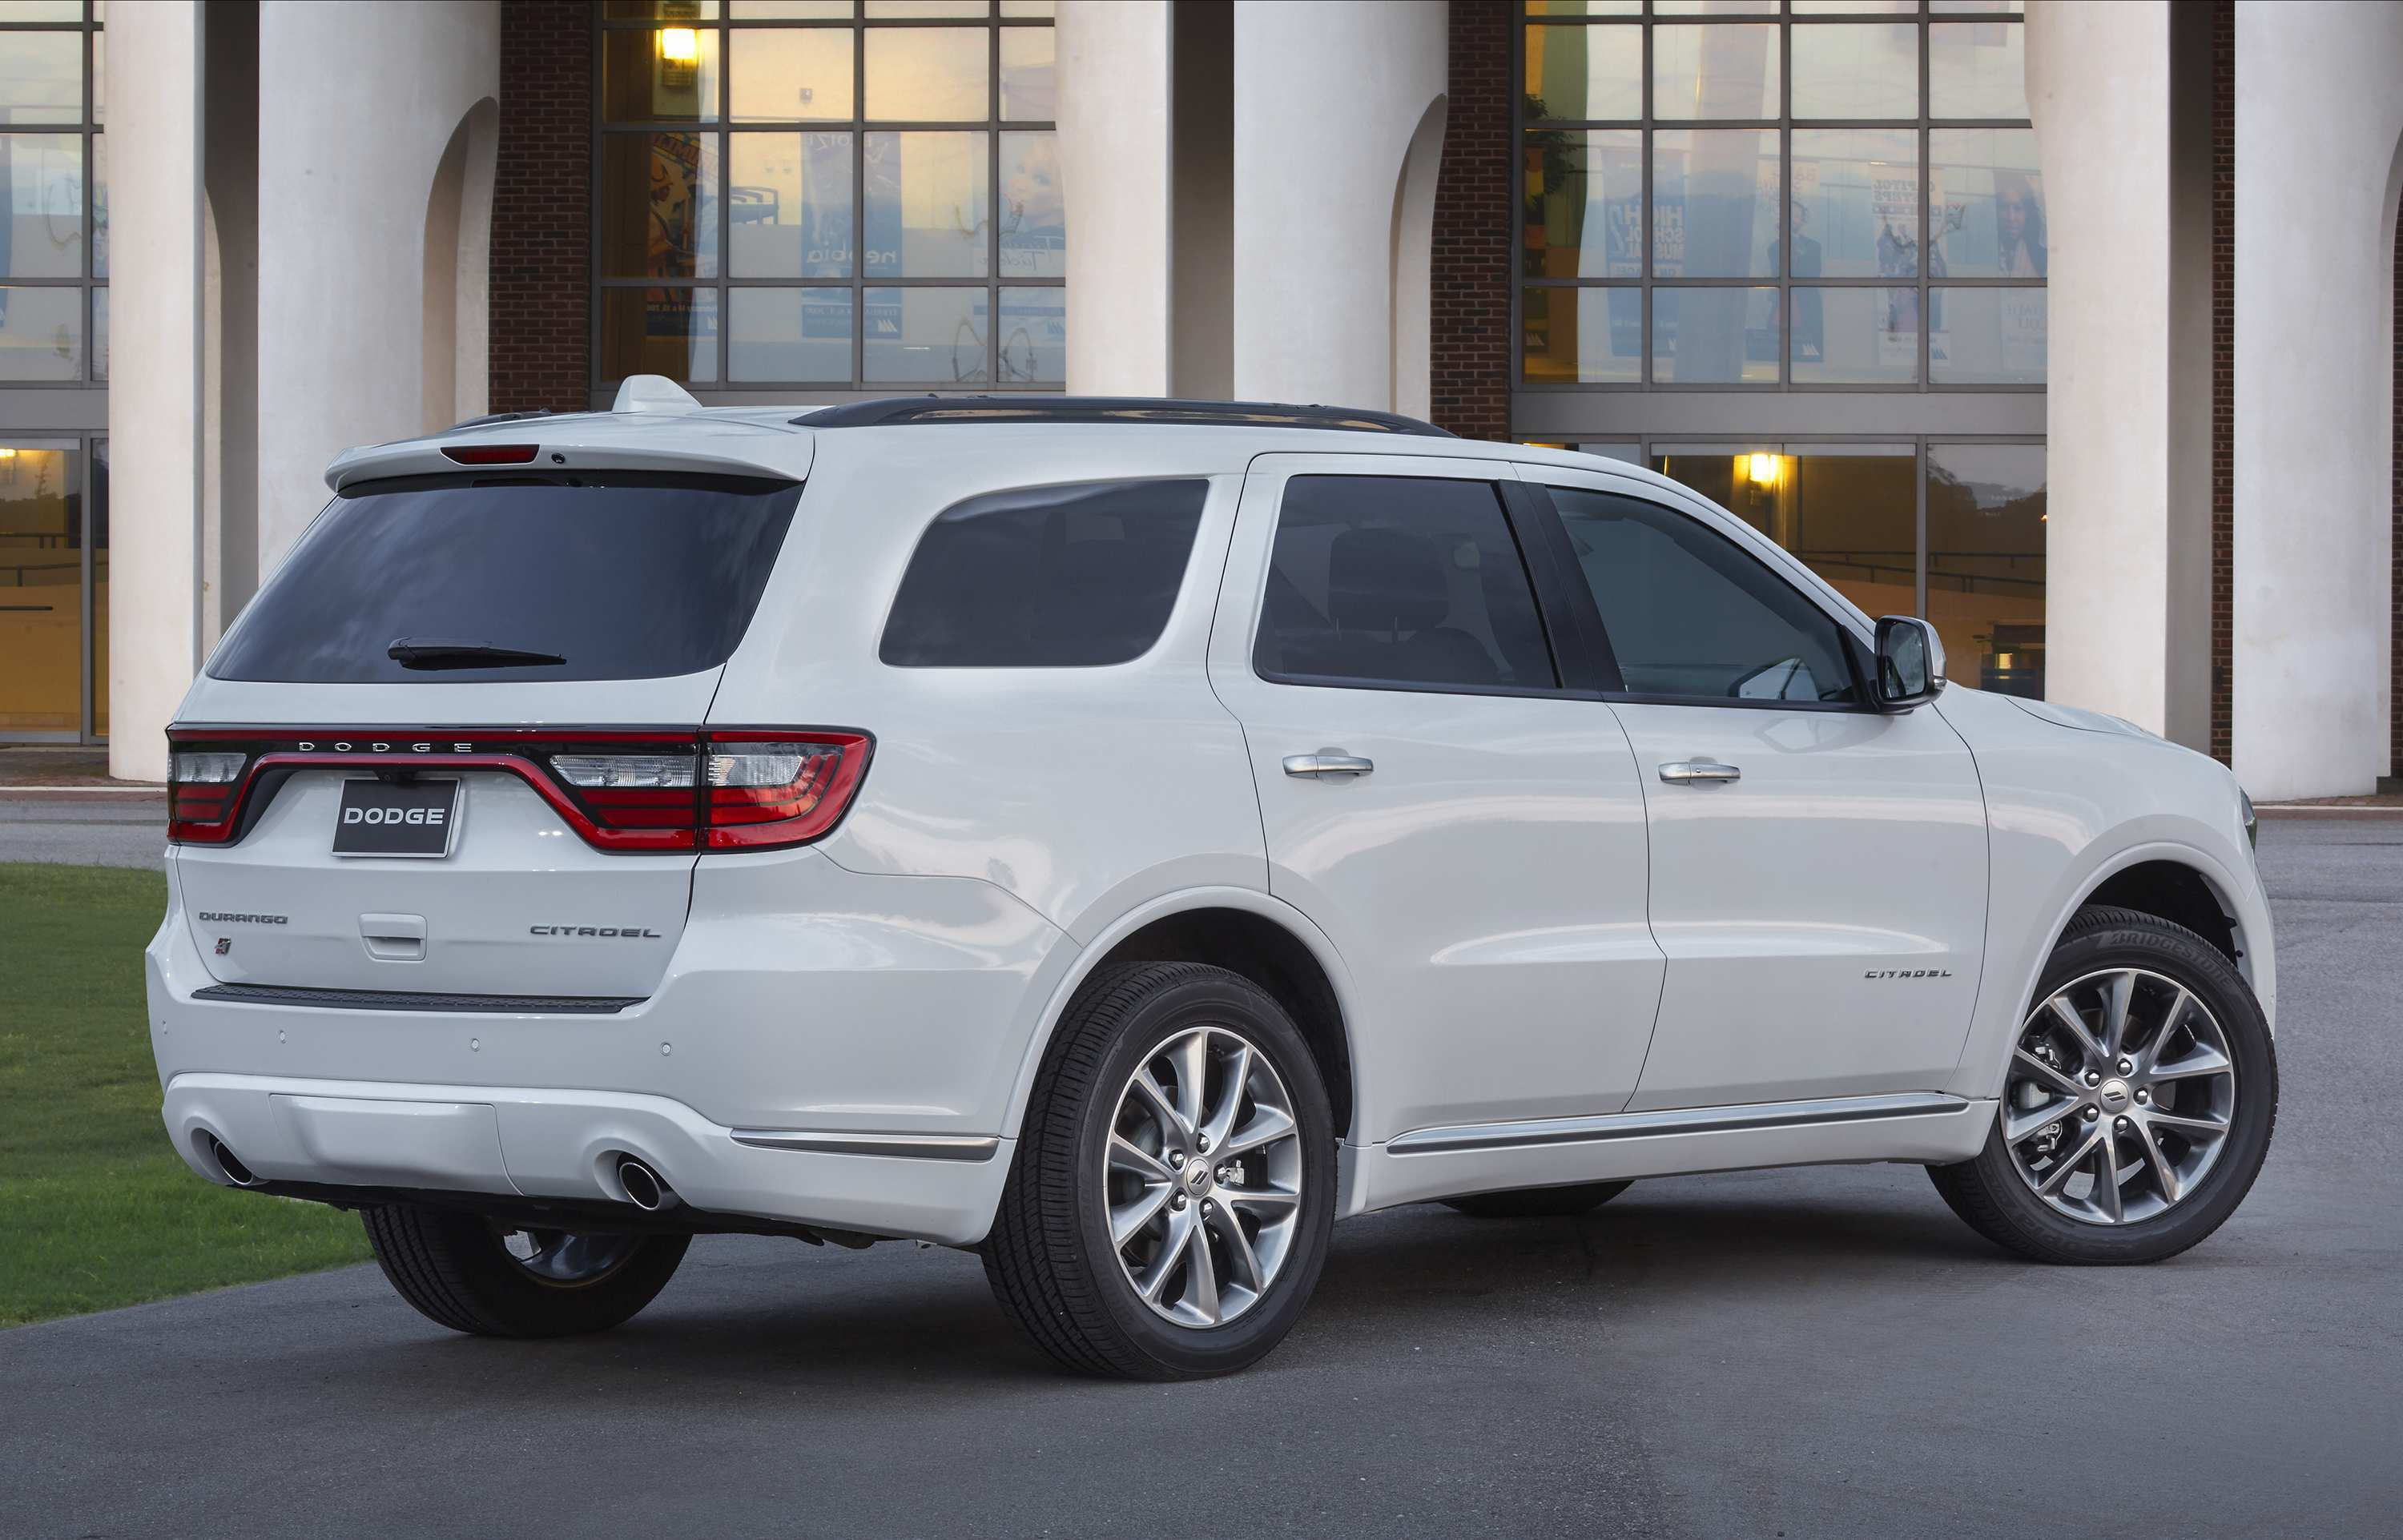 44 A 2020 Dodge Durango Price And Review